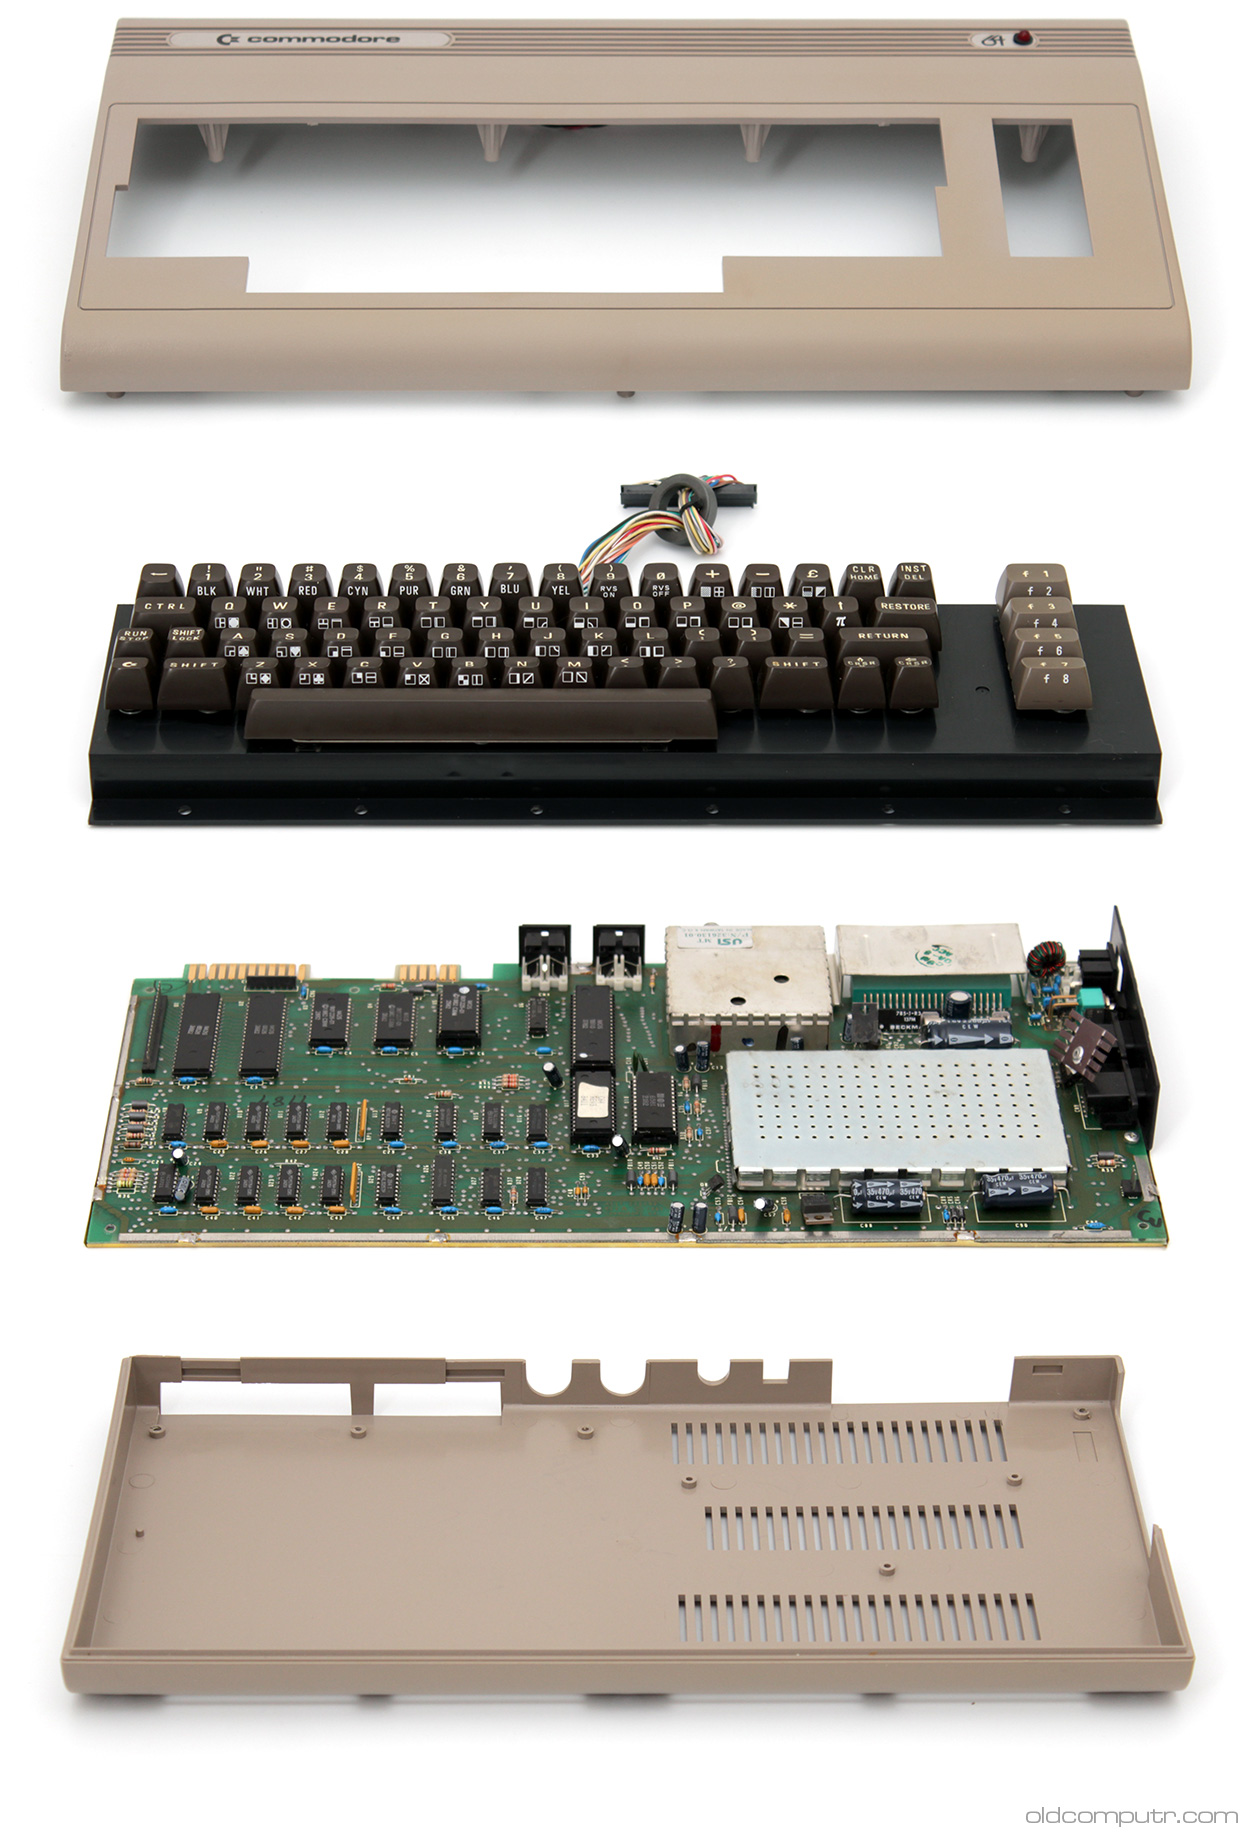 Commodore 64 - teardown